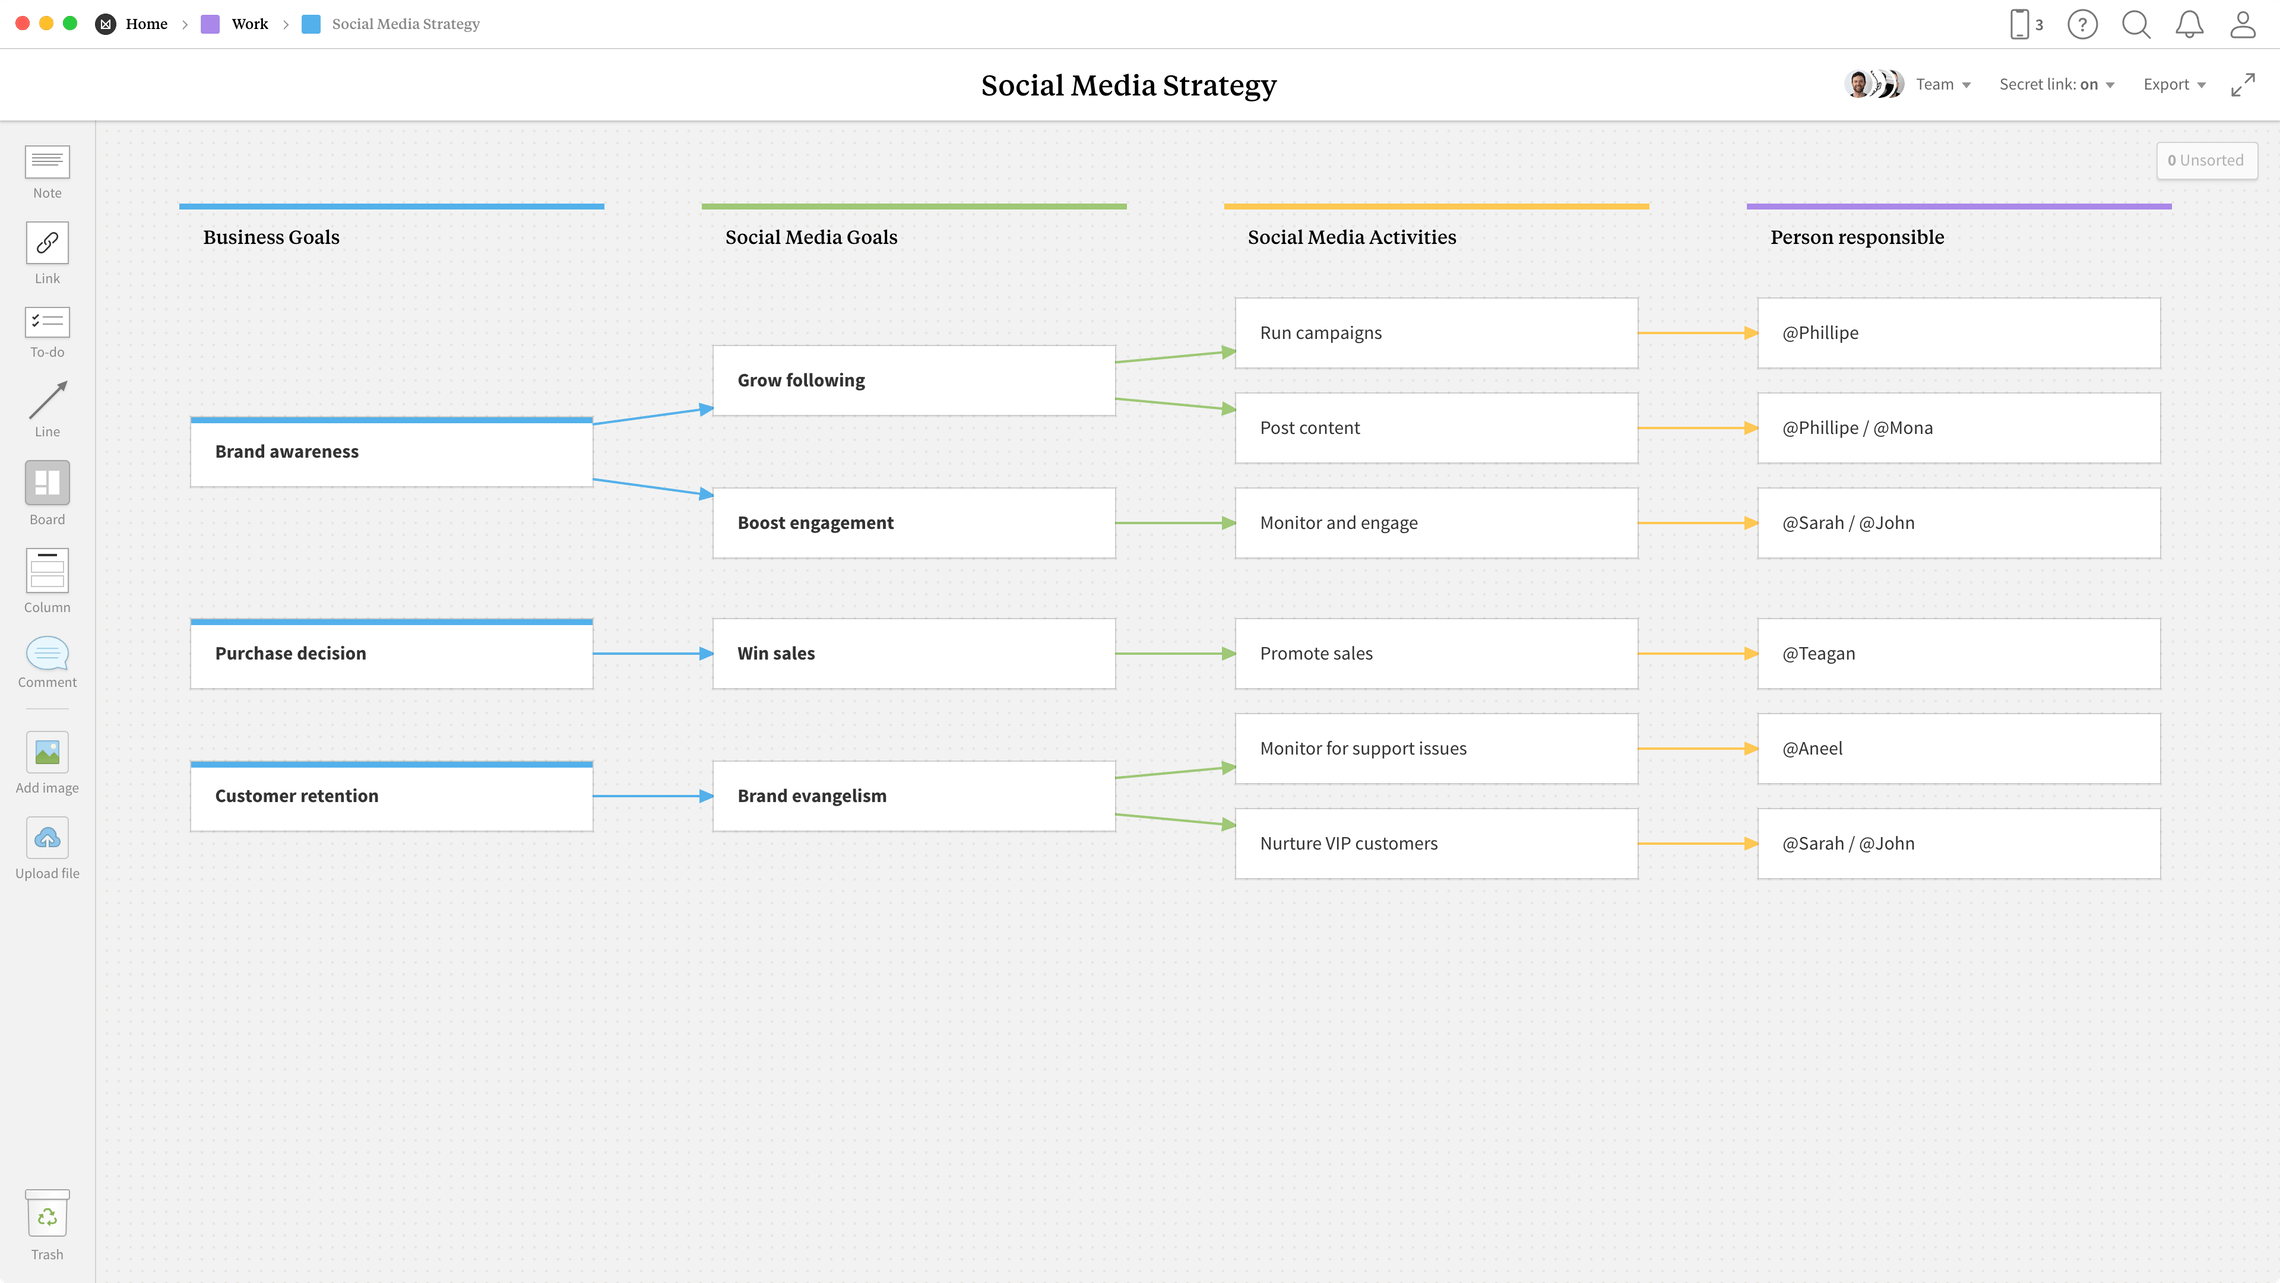 Social Media Strategy Template, within the Milanote app